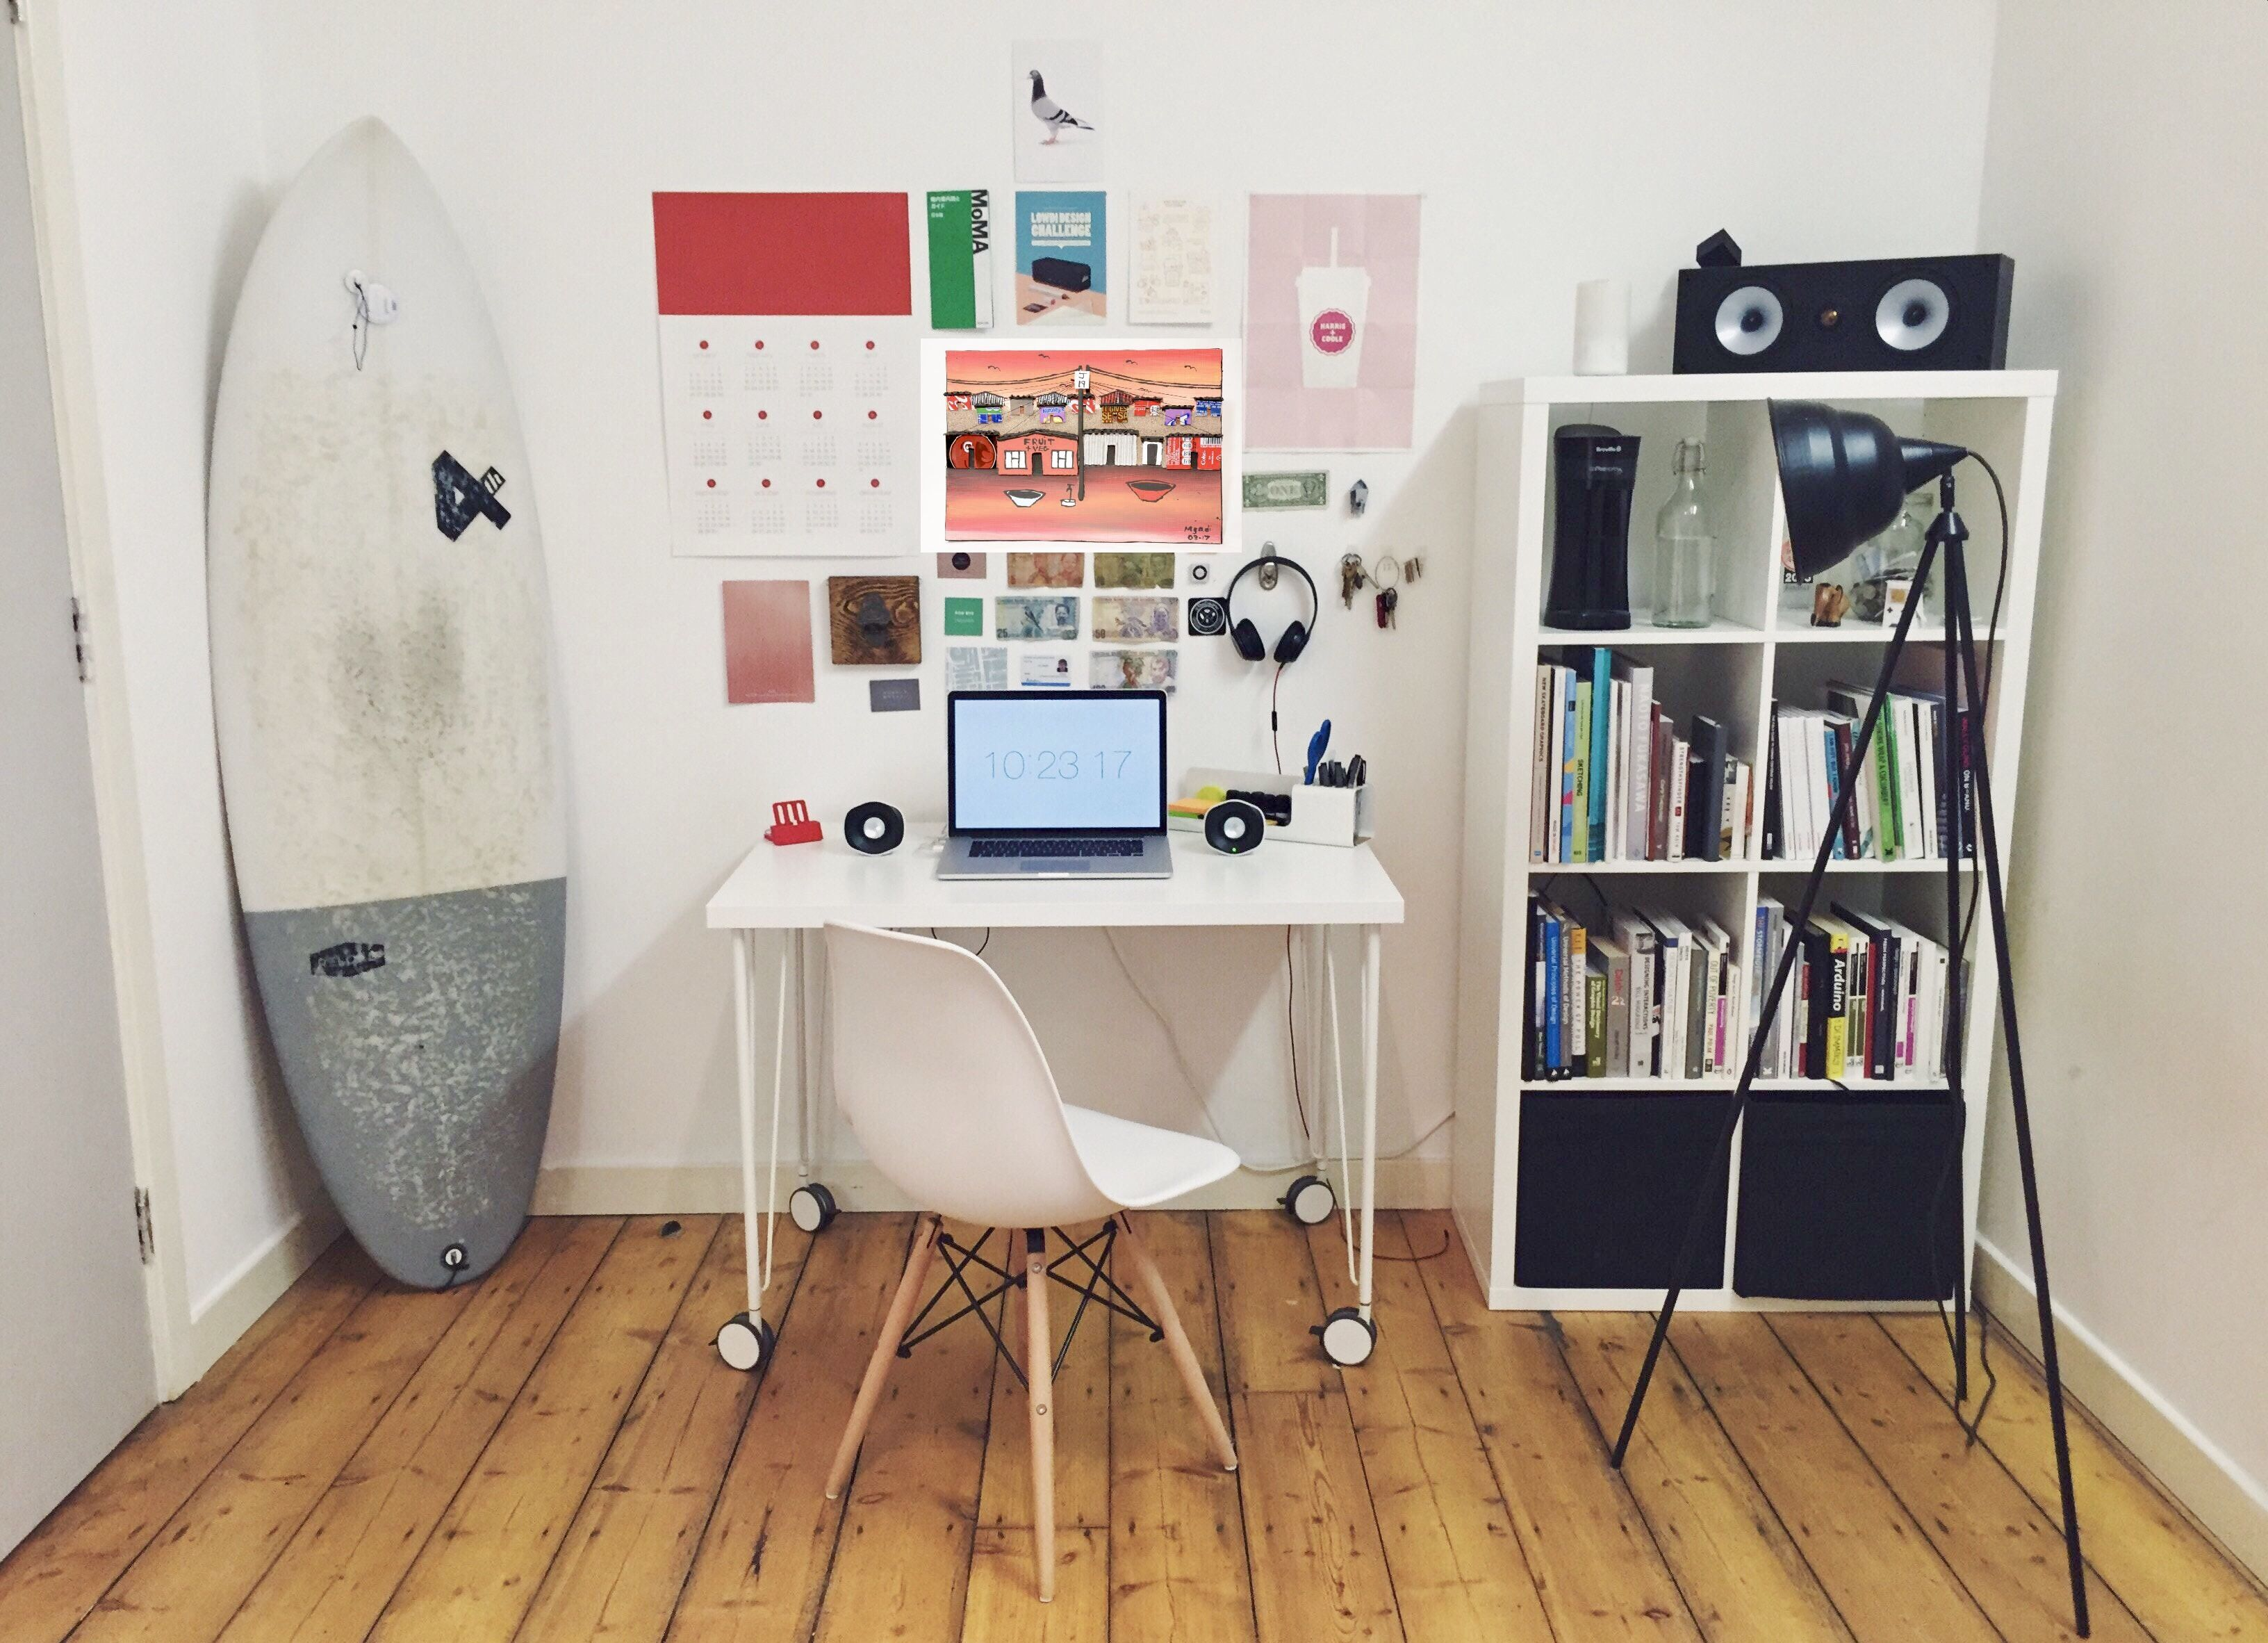 Our Township Art Is Nested Beautiful In This Home Office